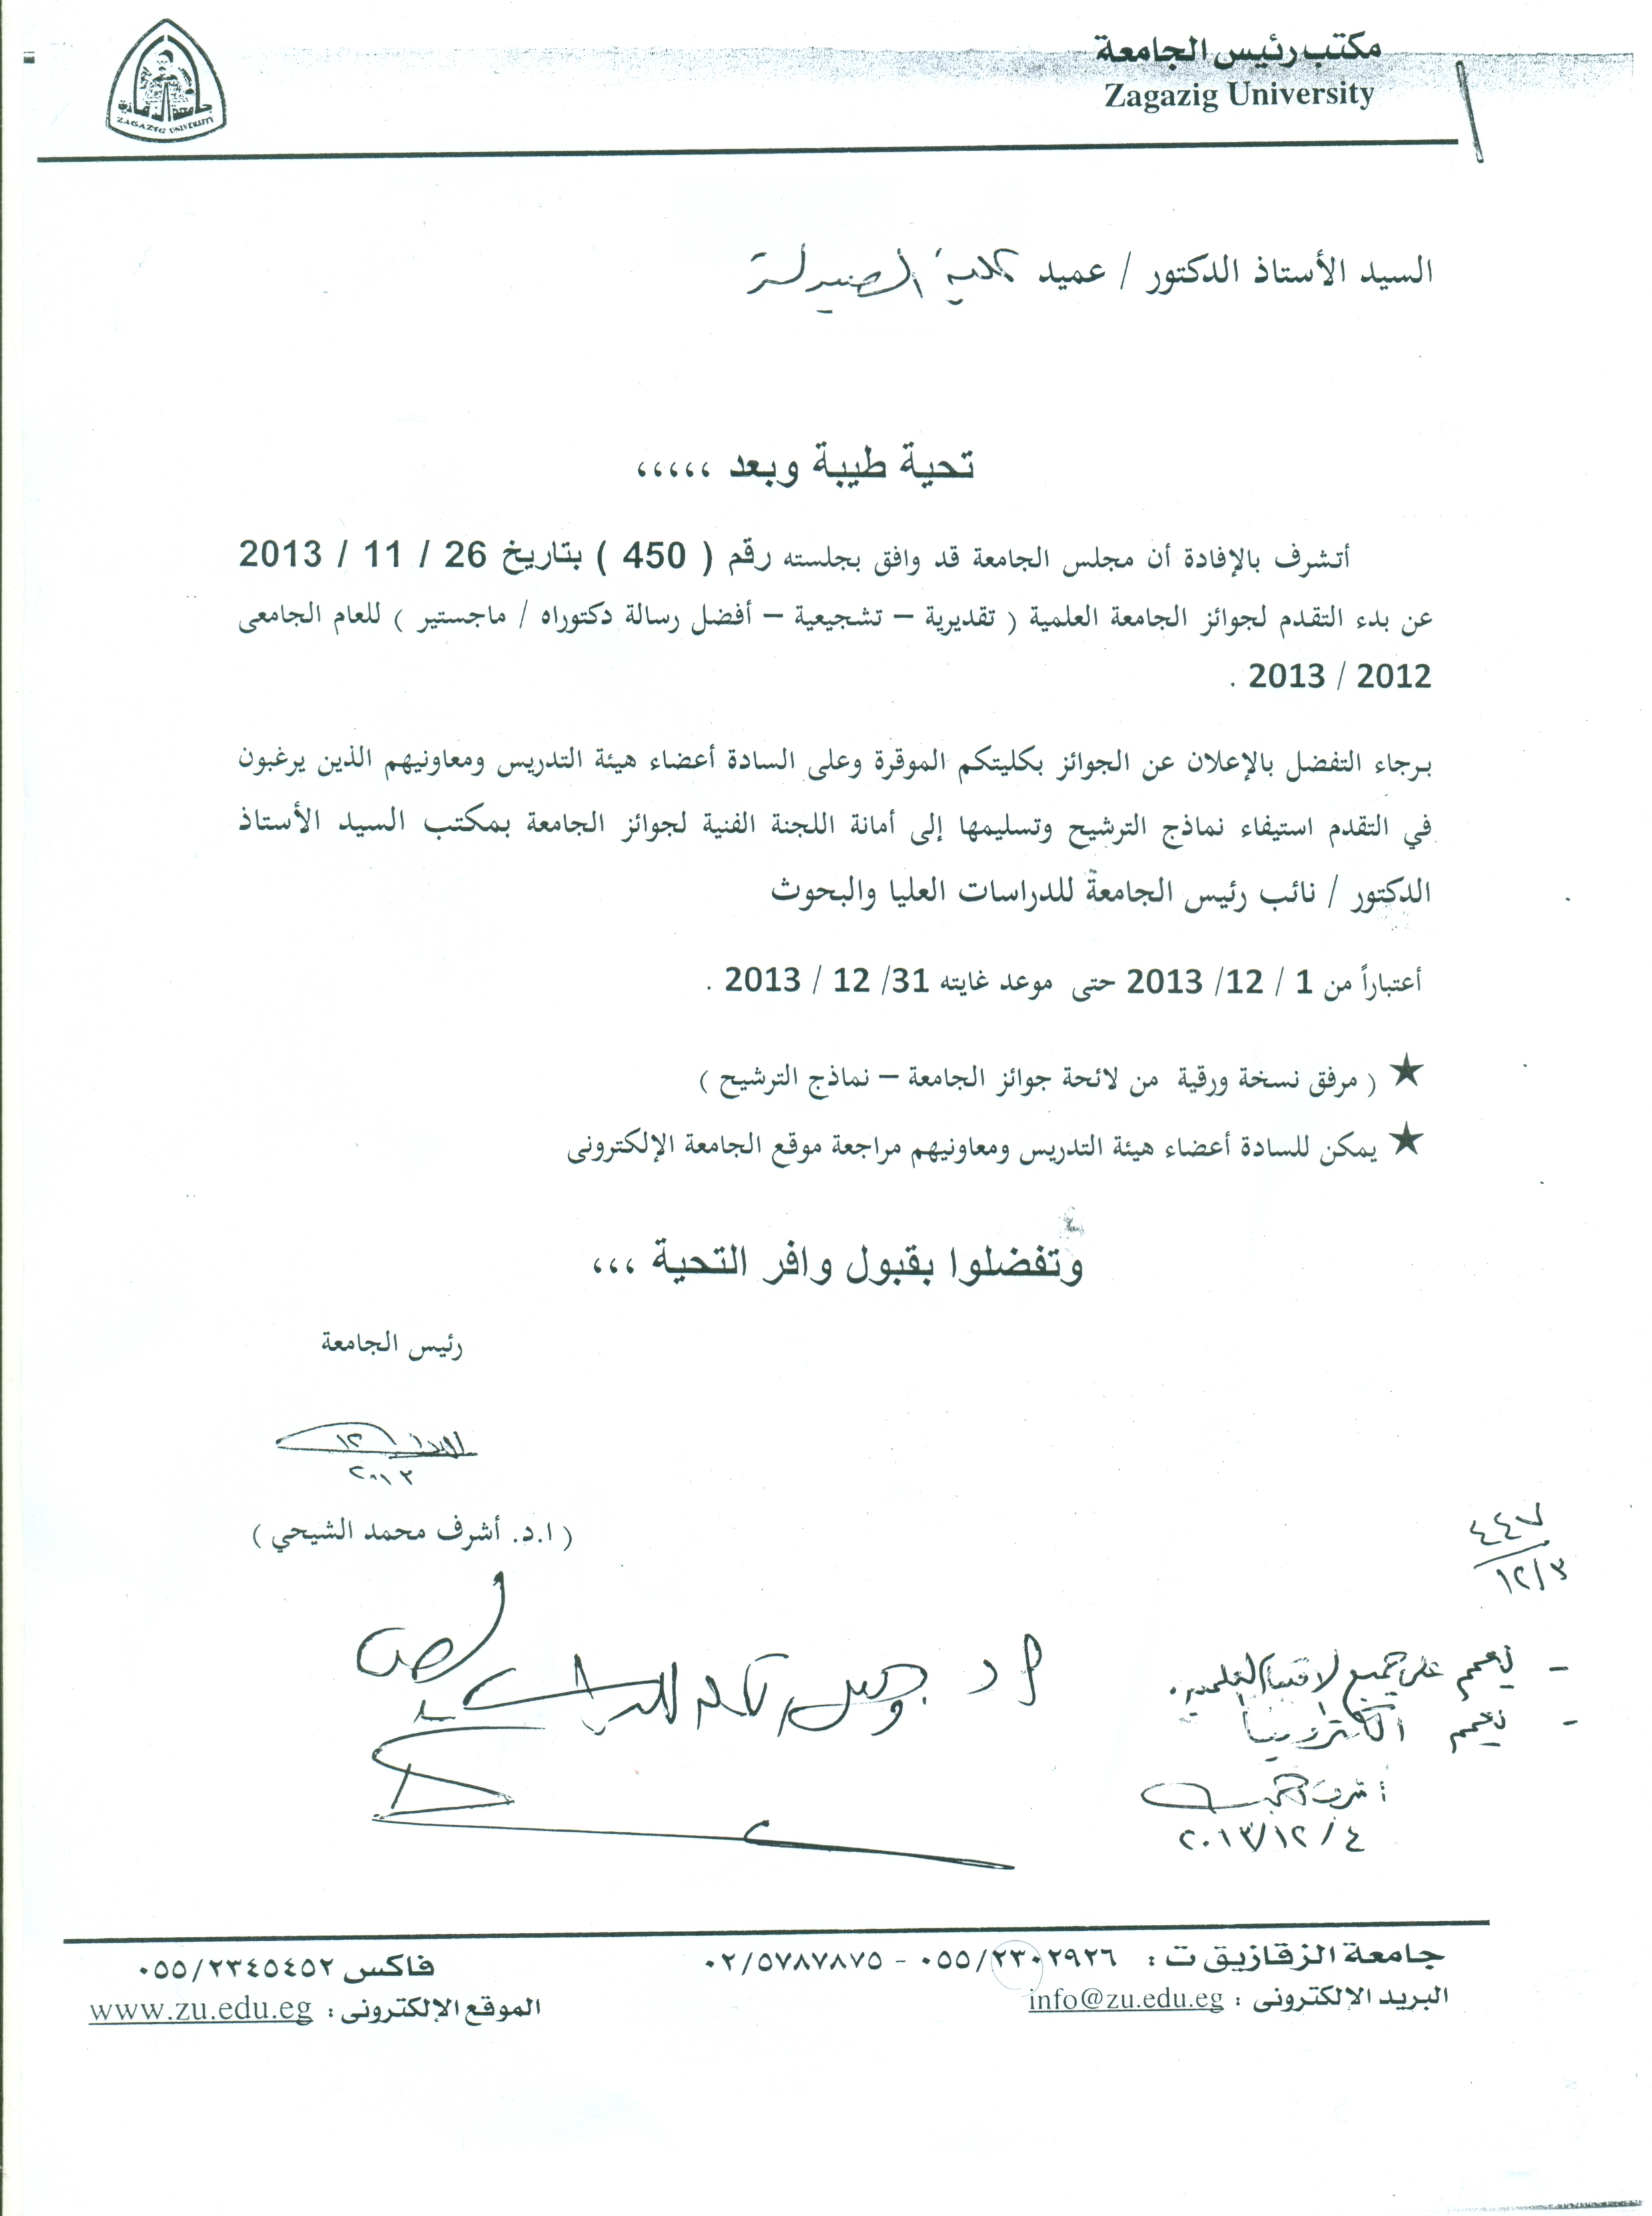 Announcement on the progress of the university scientific prizes (discretionary incentive _ _ best message Juris Doctor / Master) for the year 2012/2013